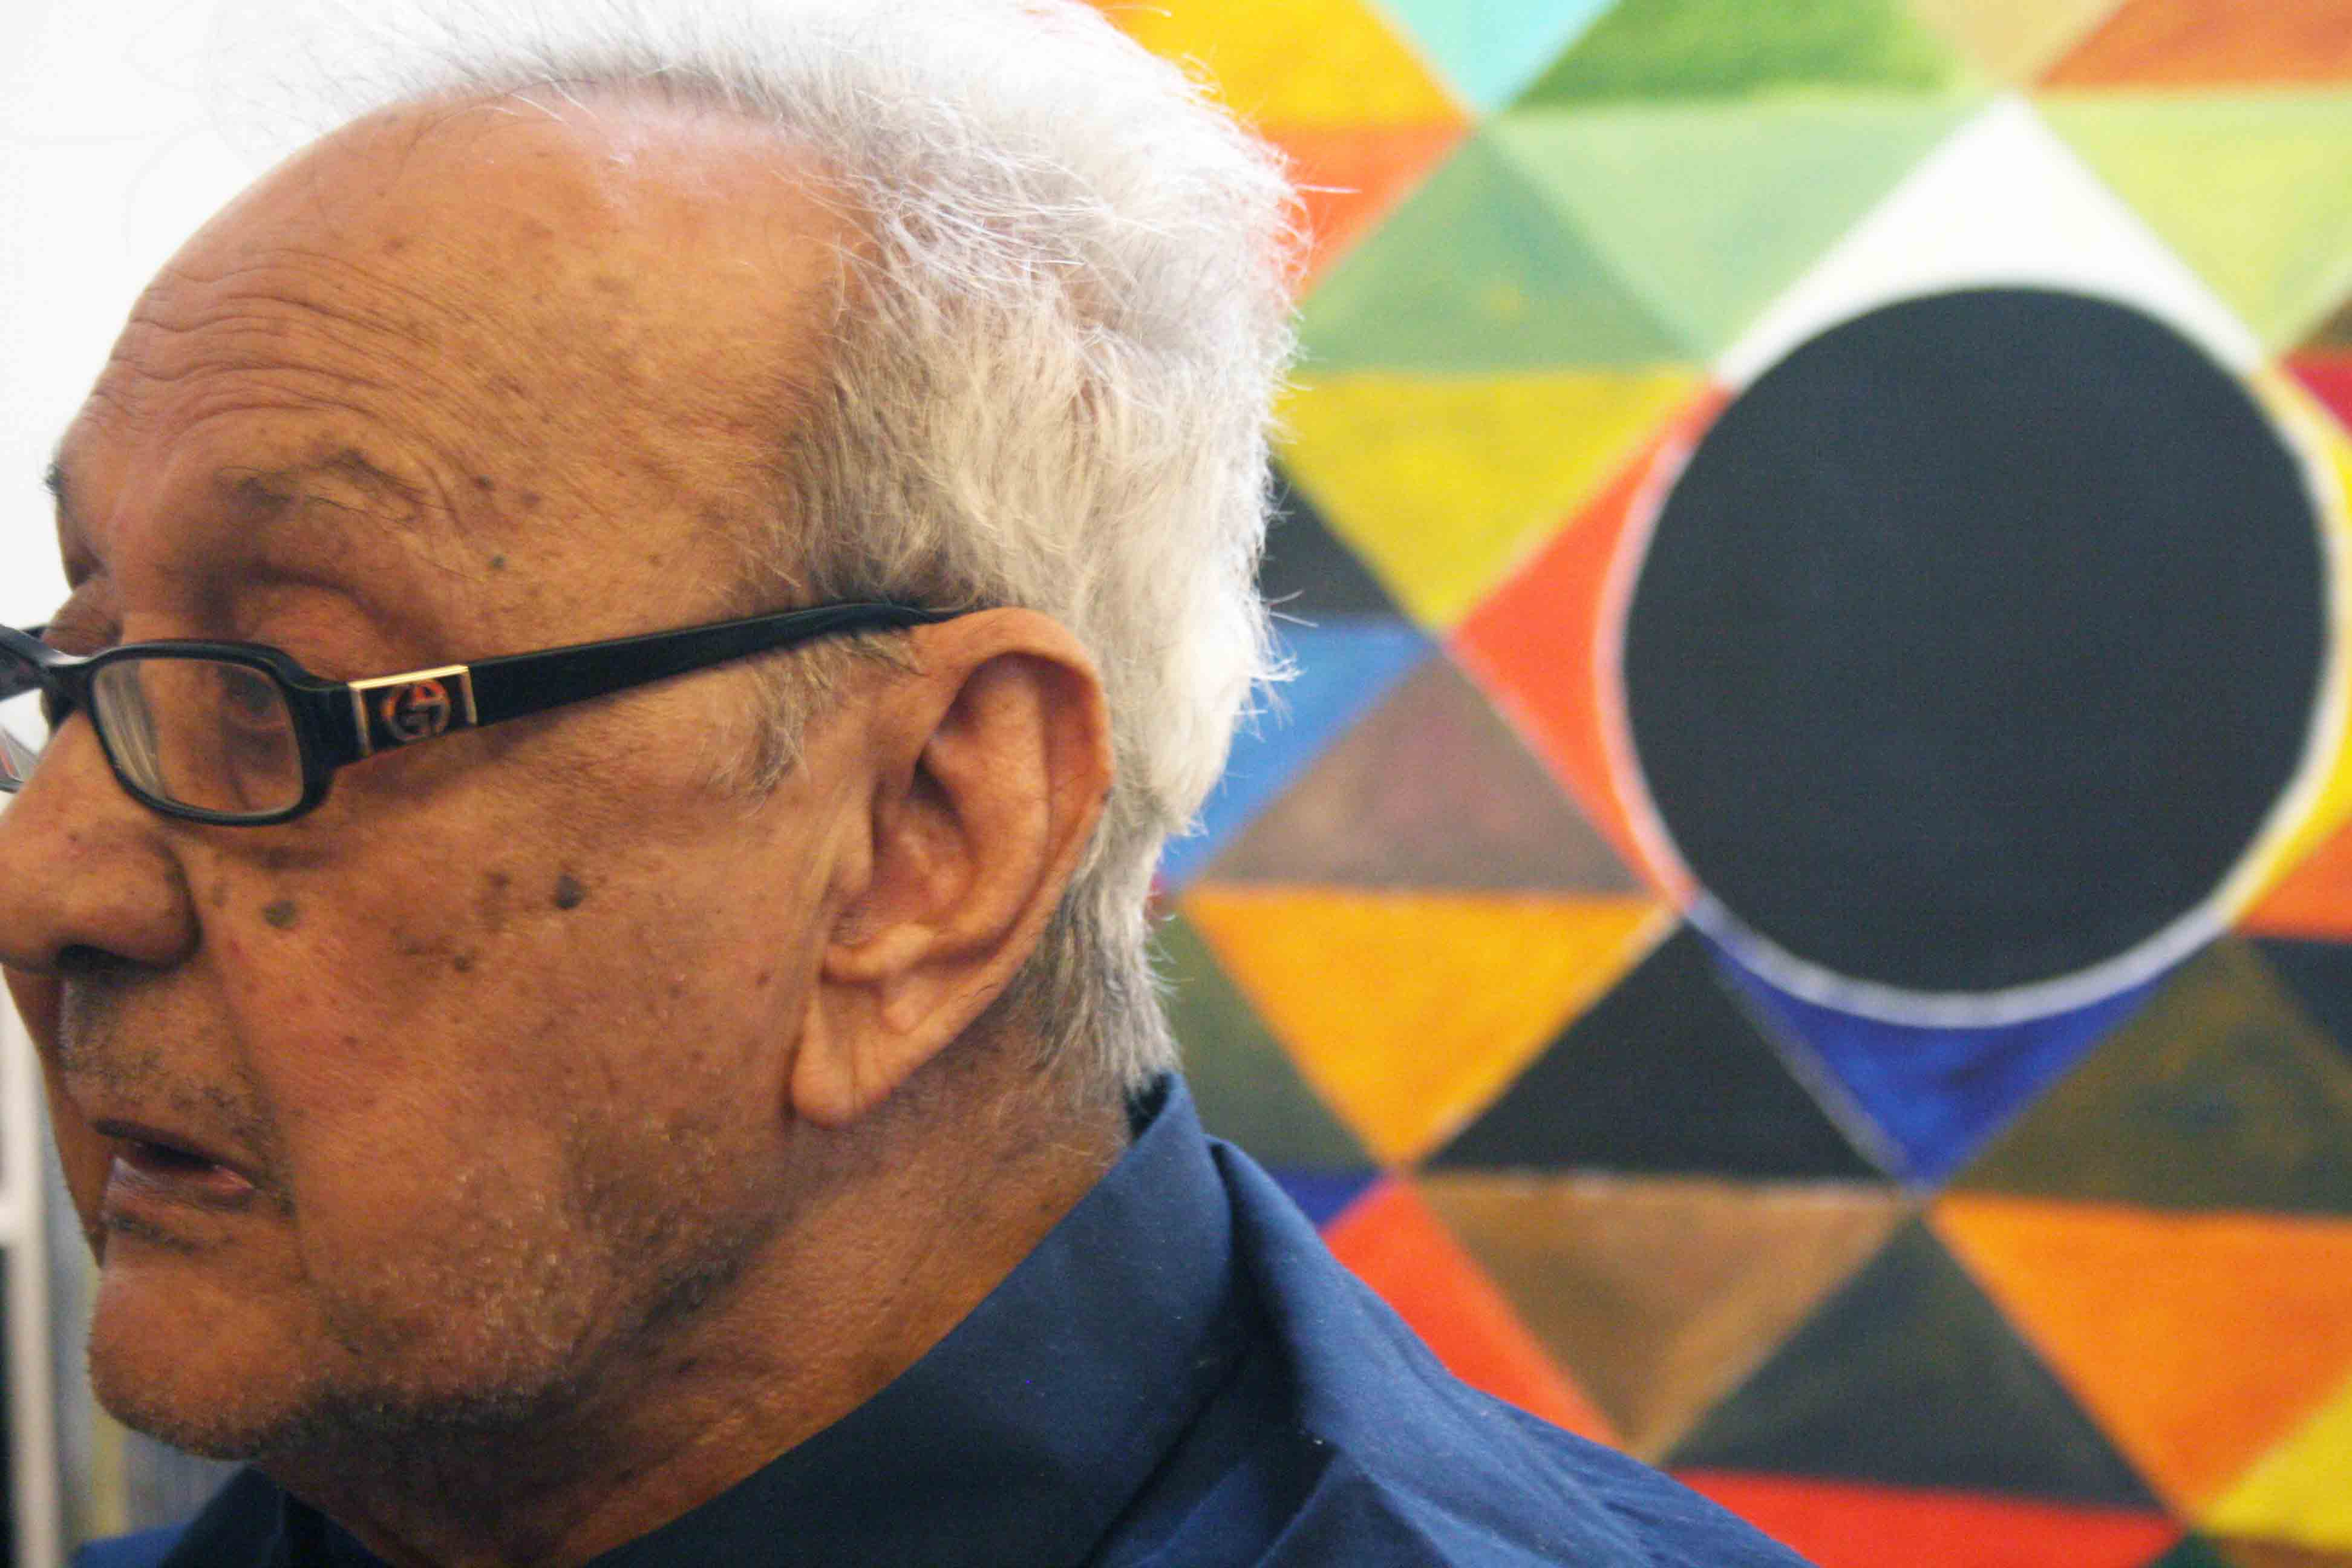 City Obituary – Raza Remembers Husain